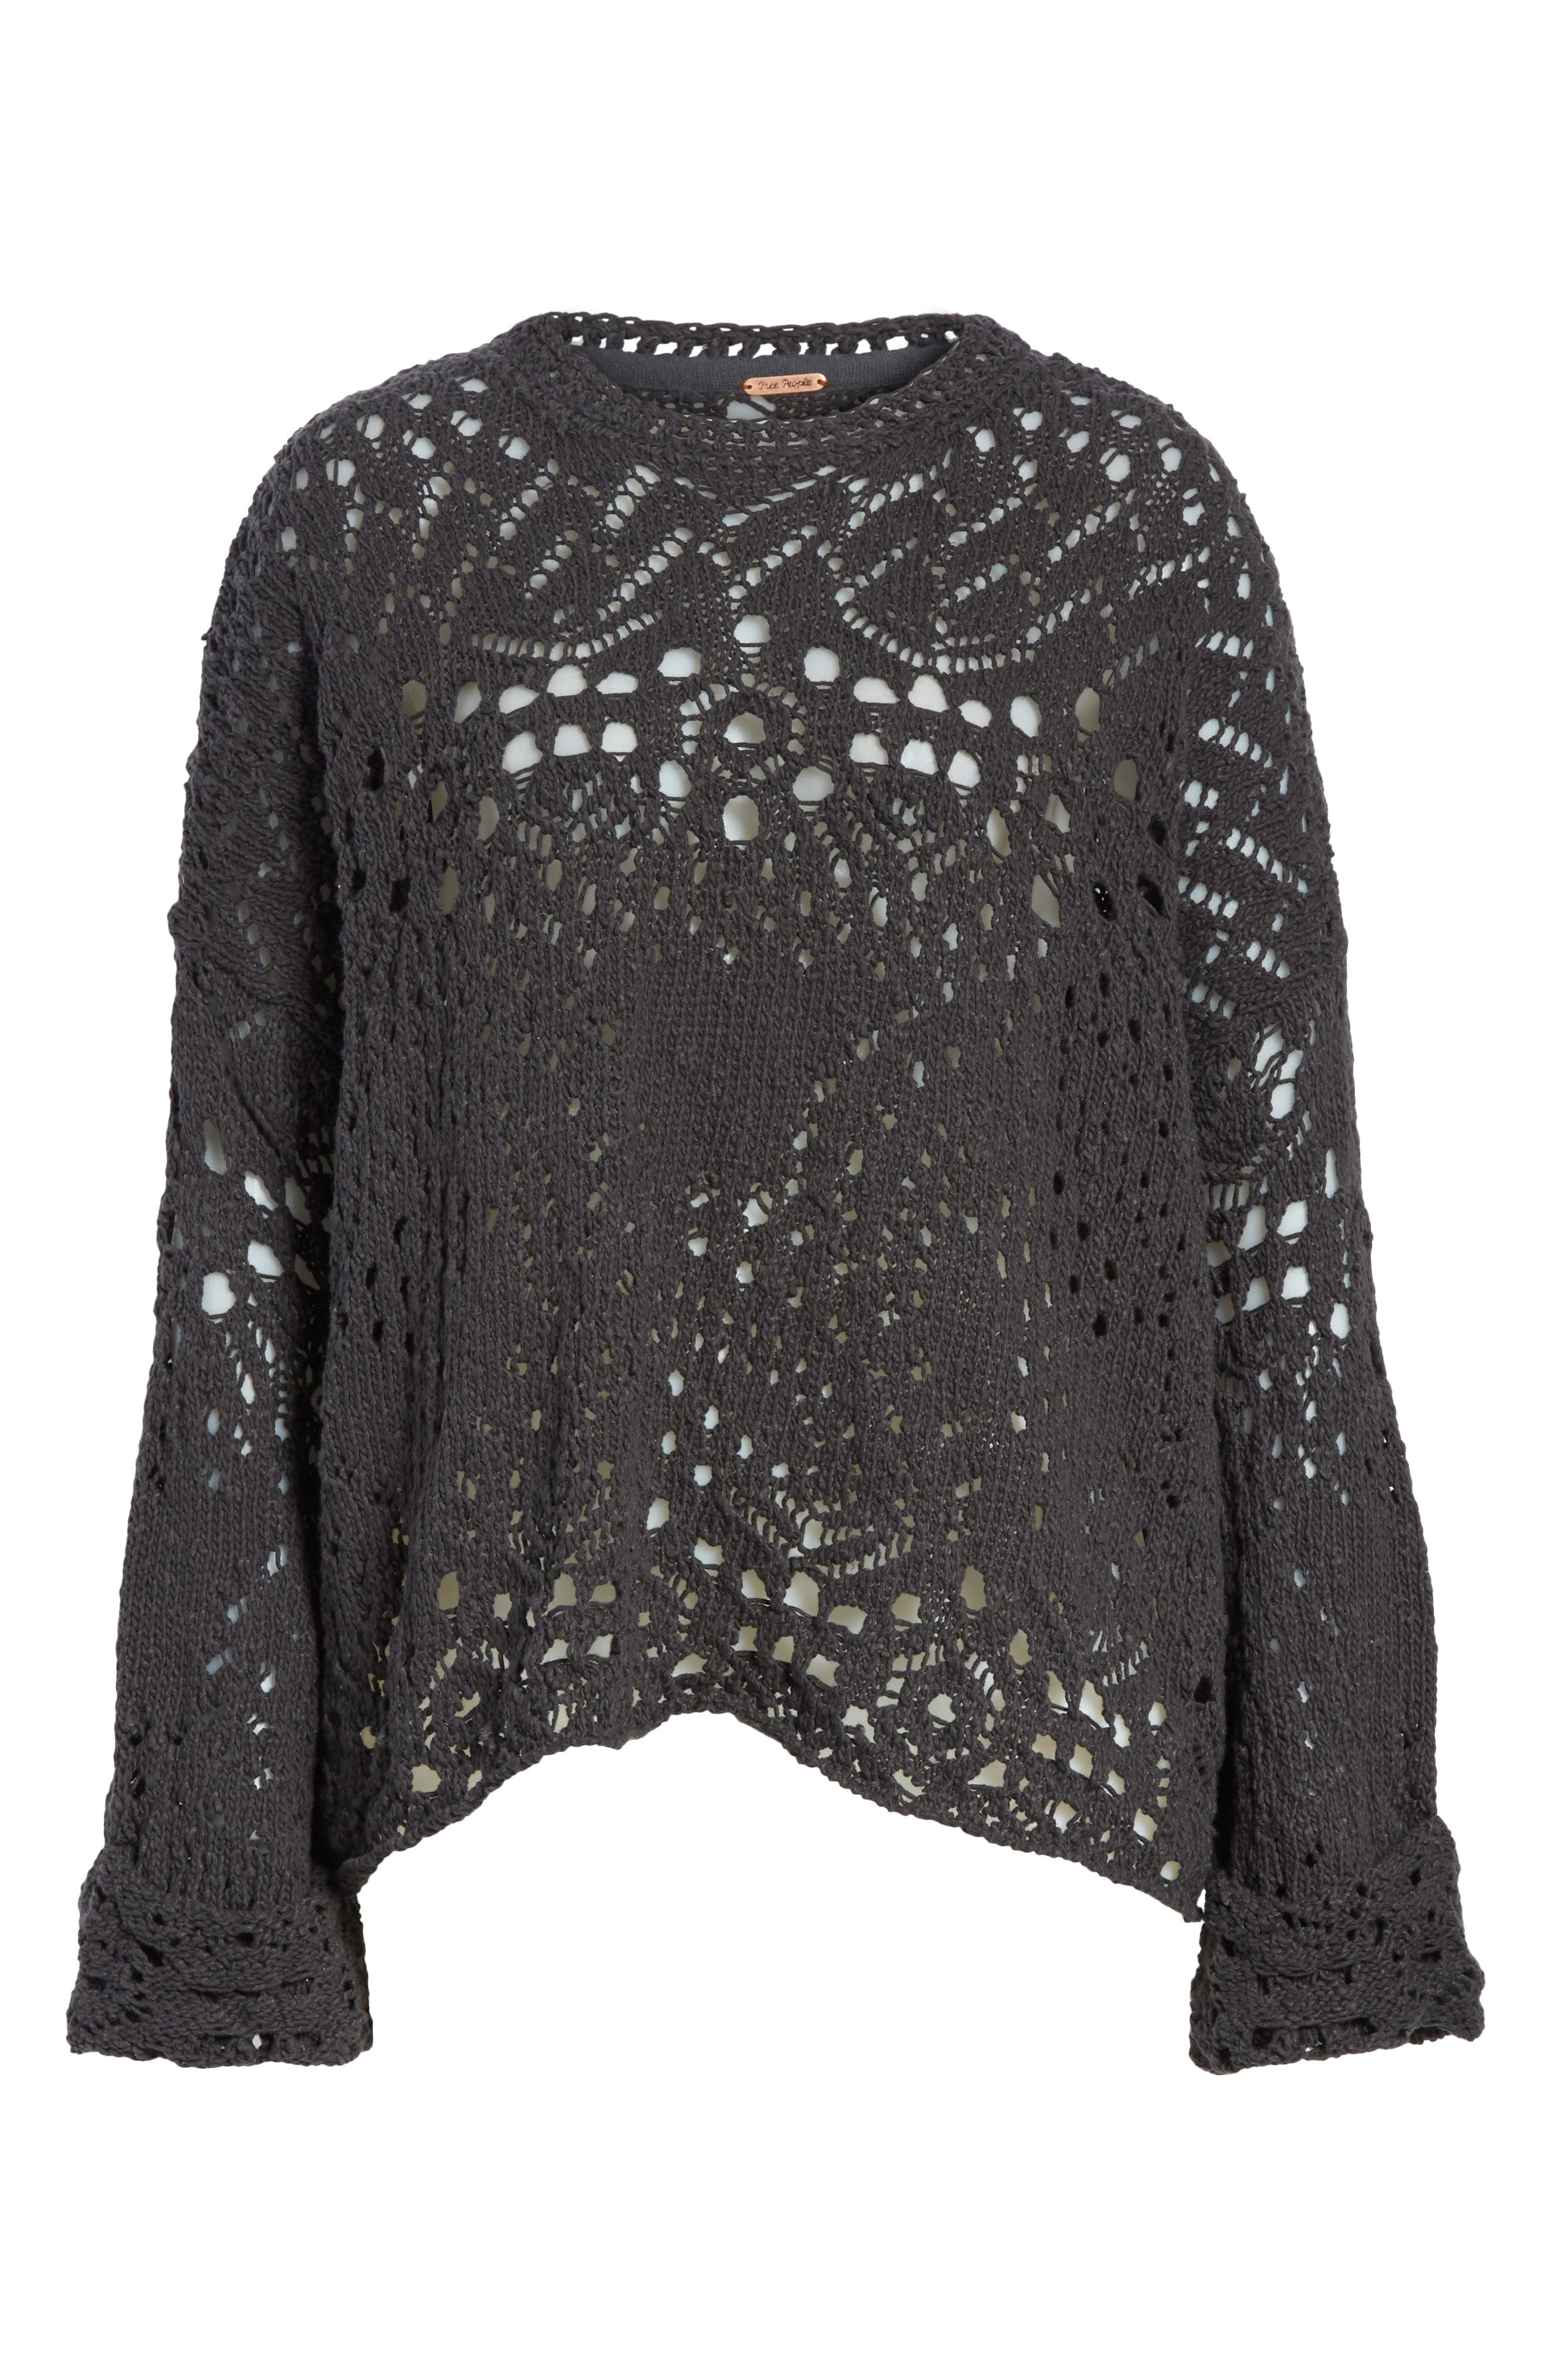 Traveling Lace Sweater,                             Alternate thumbnail 6, color,                             009